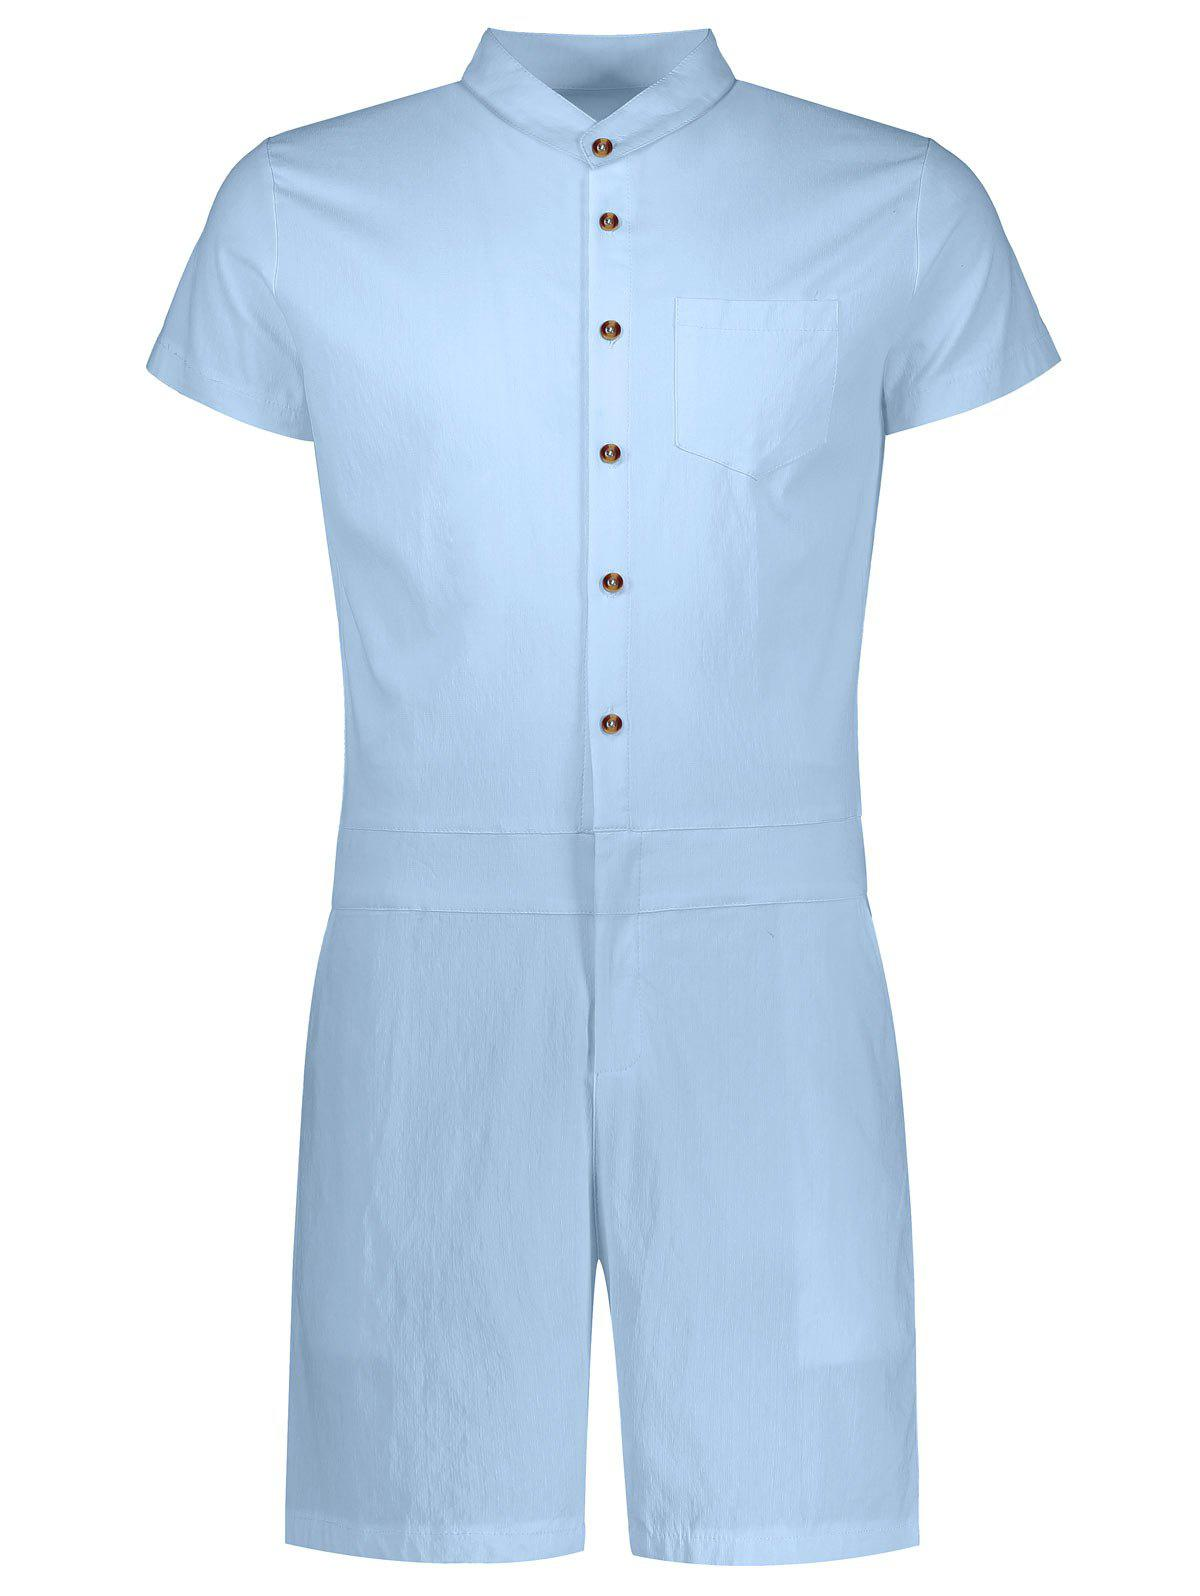 Single Breasted Short Sleeve Romper - LIGHT BLUE 2XL